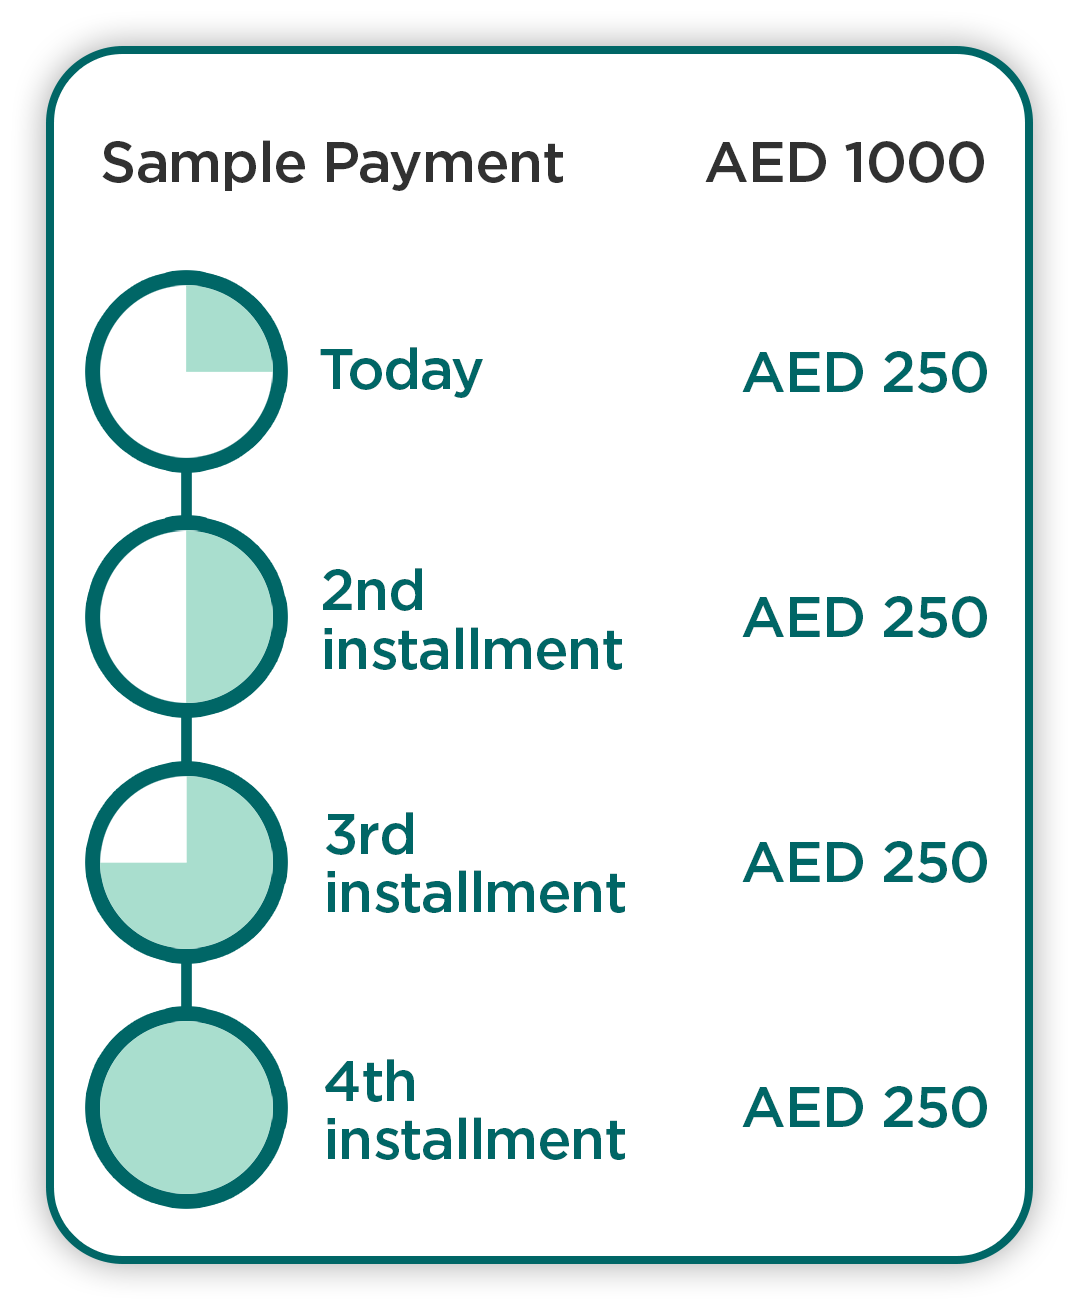 spotii sample payment